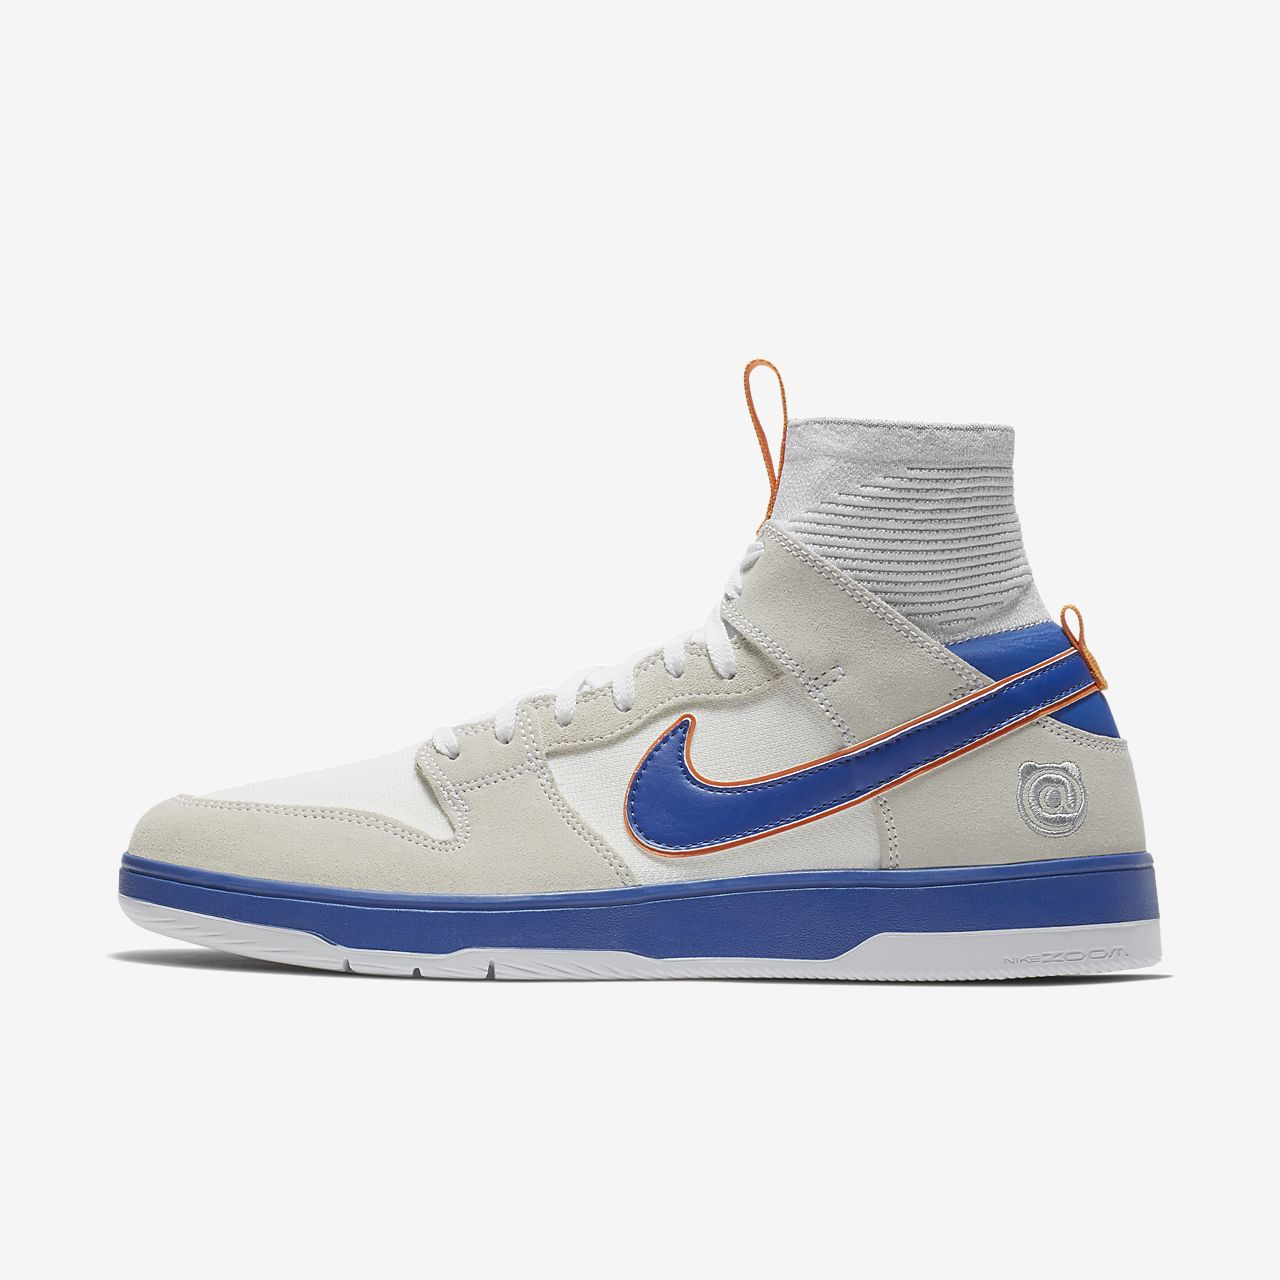 newest 7be48 dfb03 ... coupon code for chaussure de skateboard nike sb x medicom dunk high  elite qs pour homme